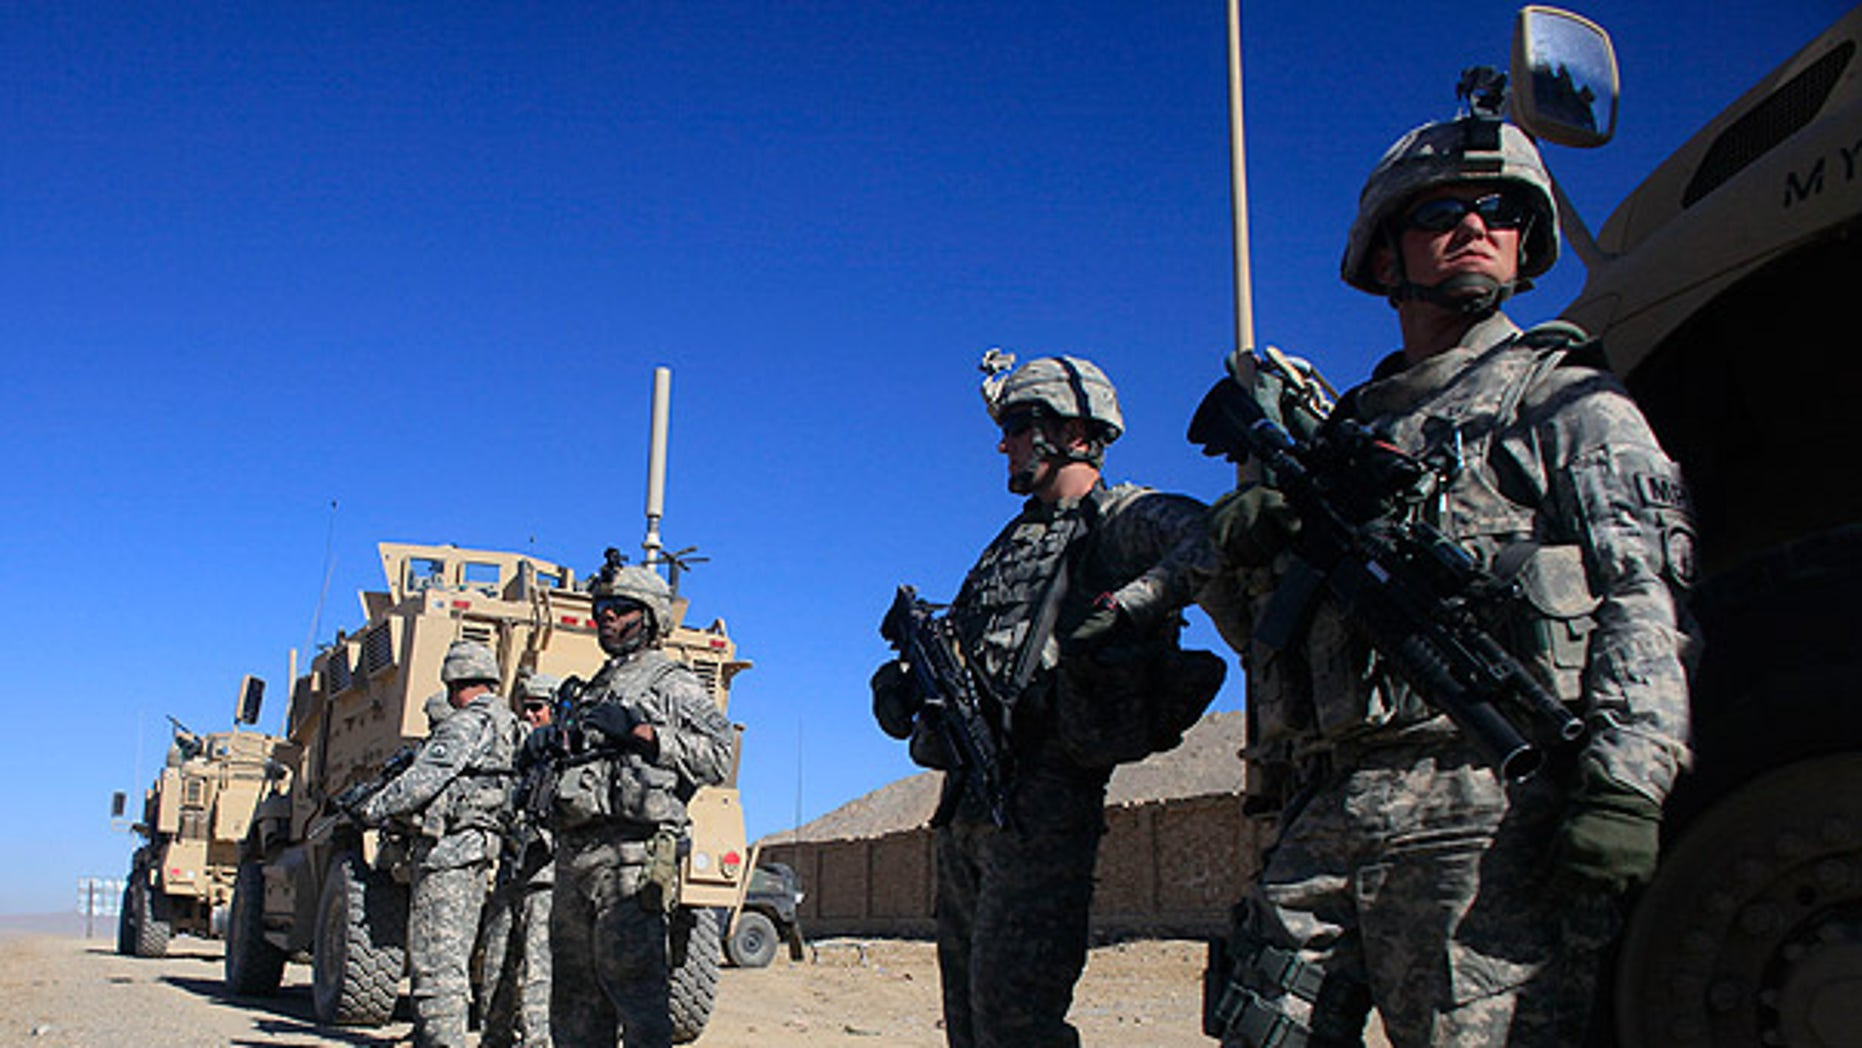 Nov. 19: U.S. Army soldiers stand next to their vehicles at a checkpoint near the town of Balisal Afghan, Afghanistan. (AP)